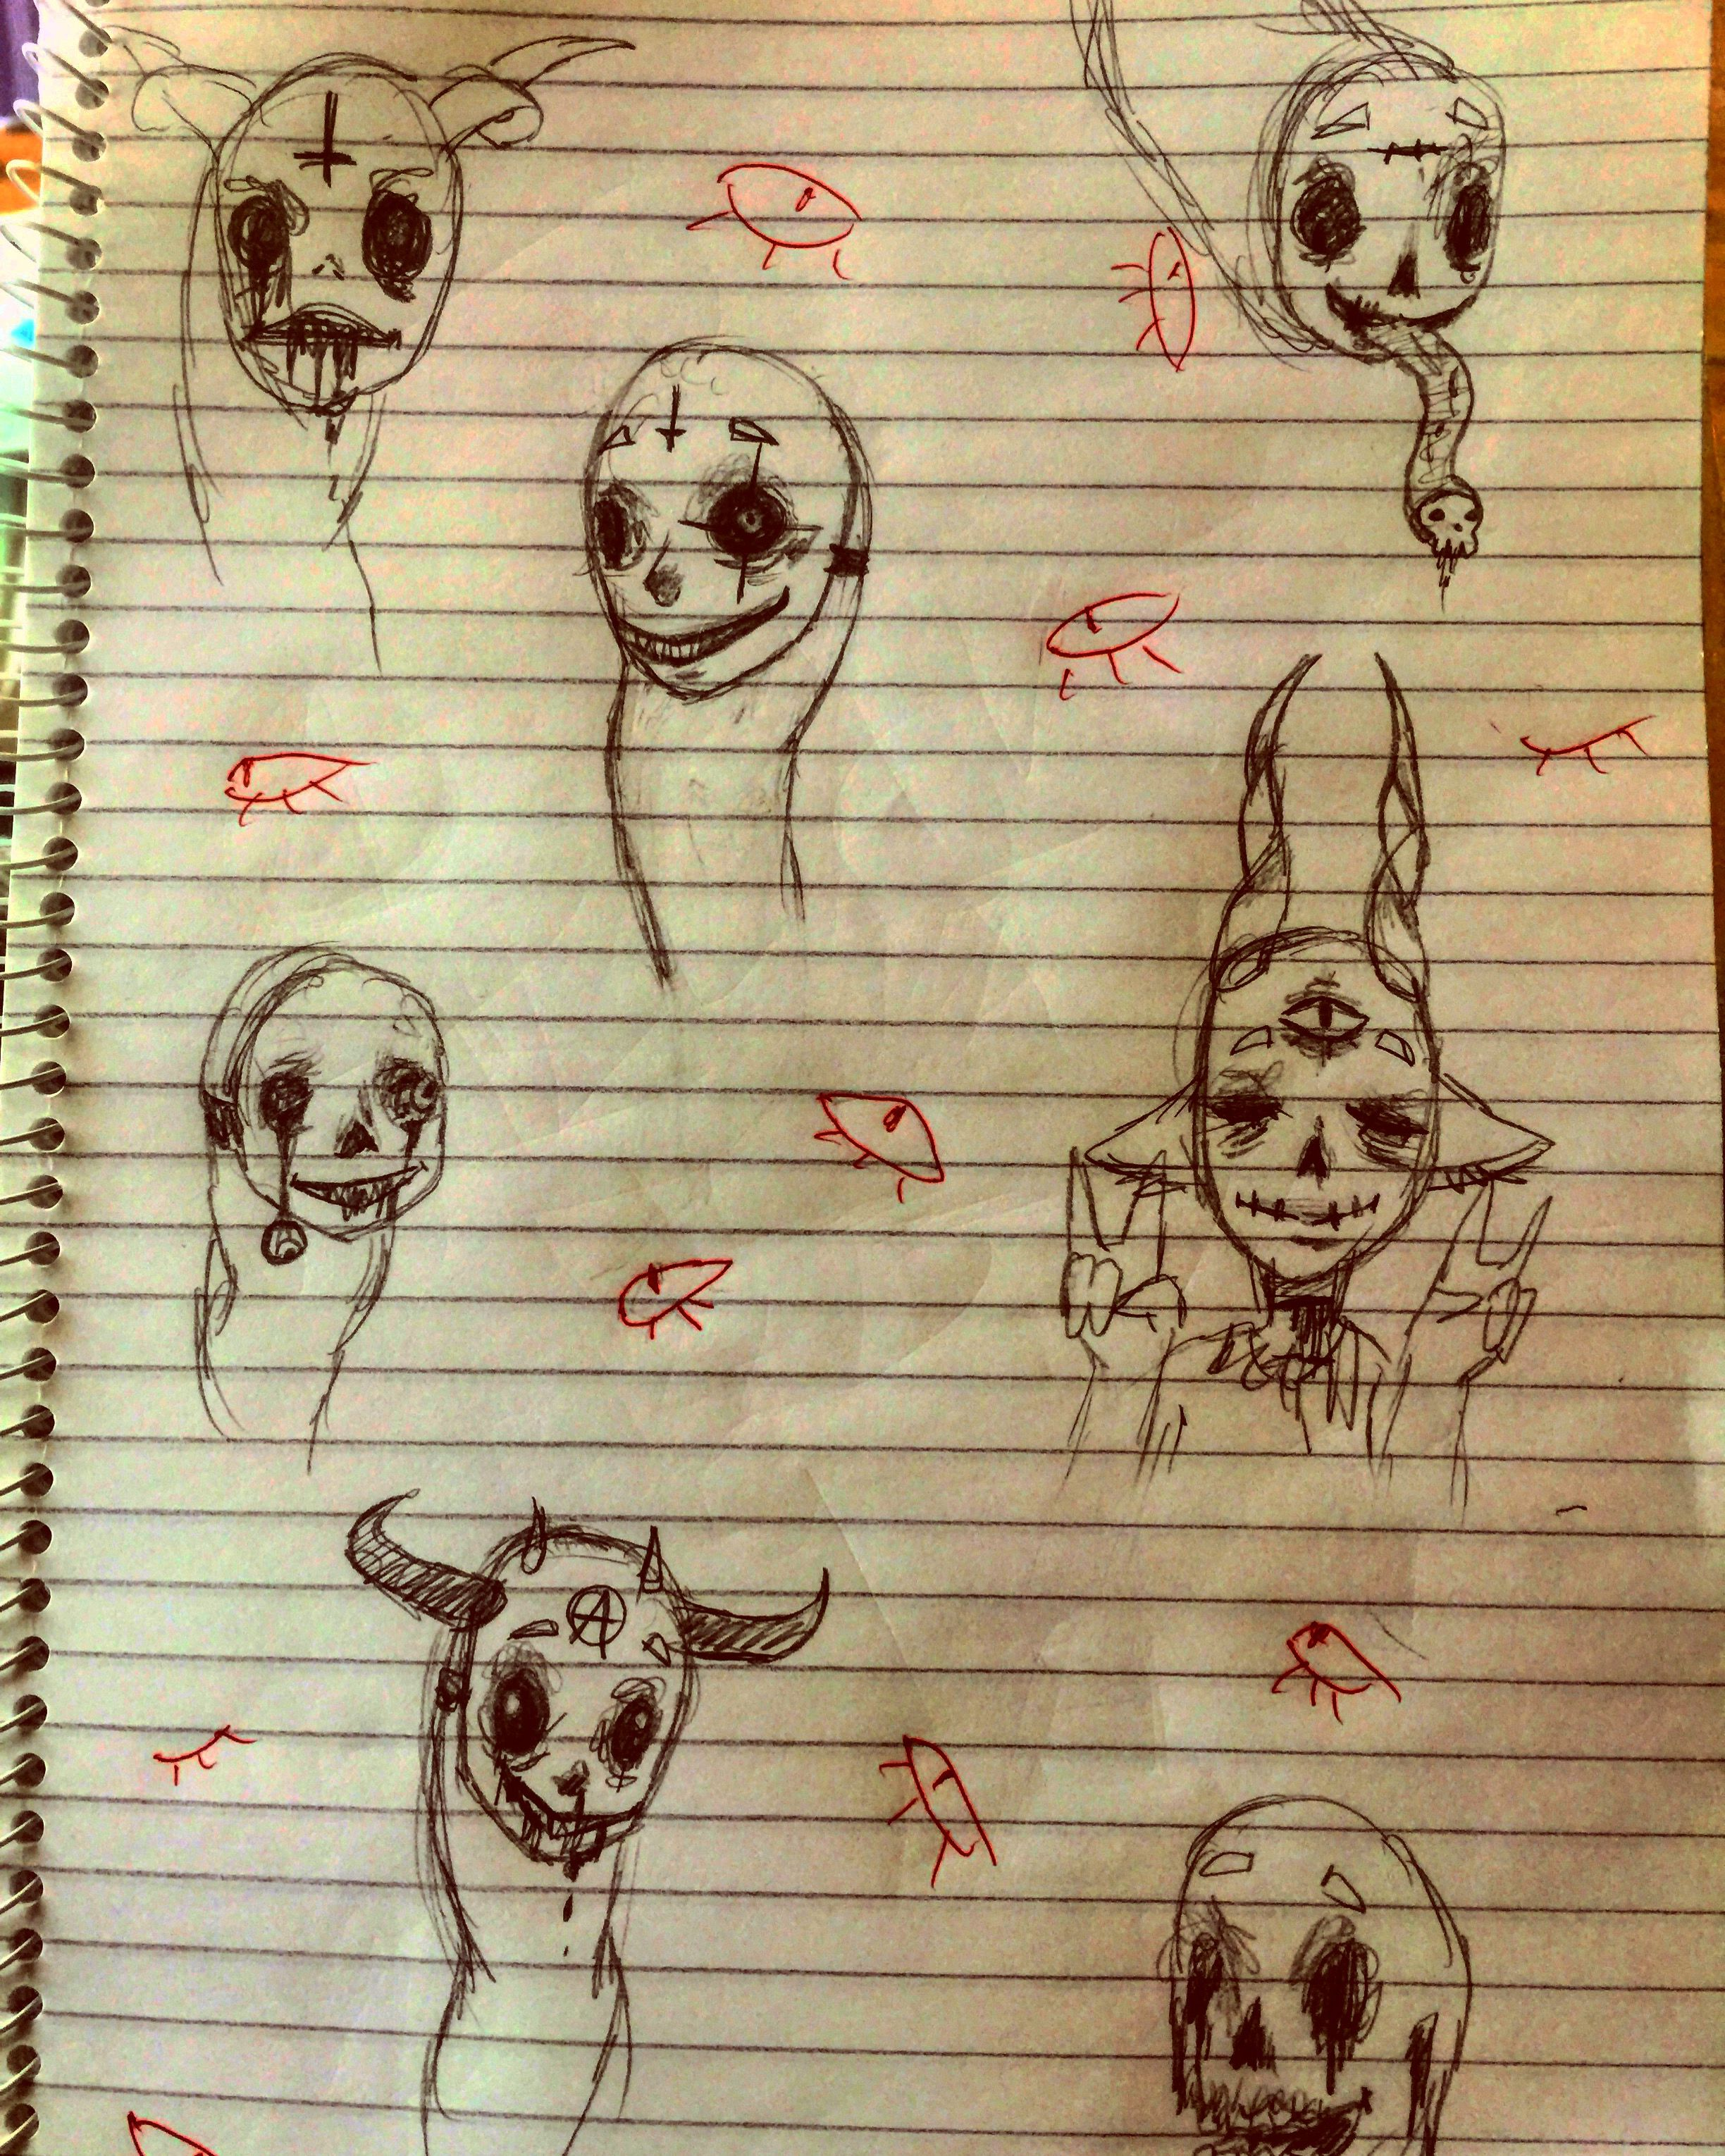 Art Draw Creepy Scary Horror Sketch Sketchbook Demon